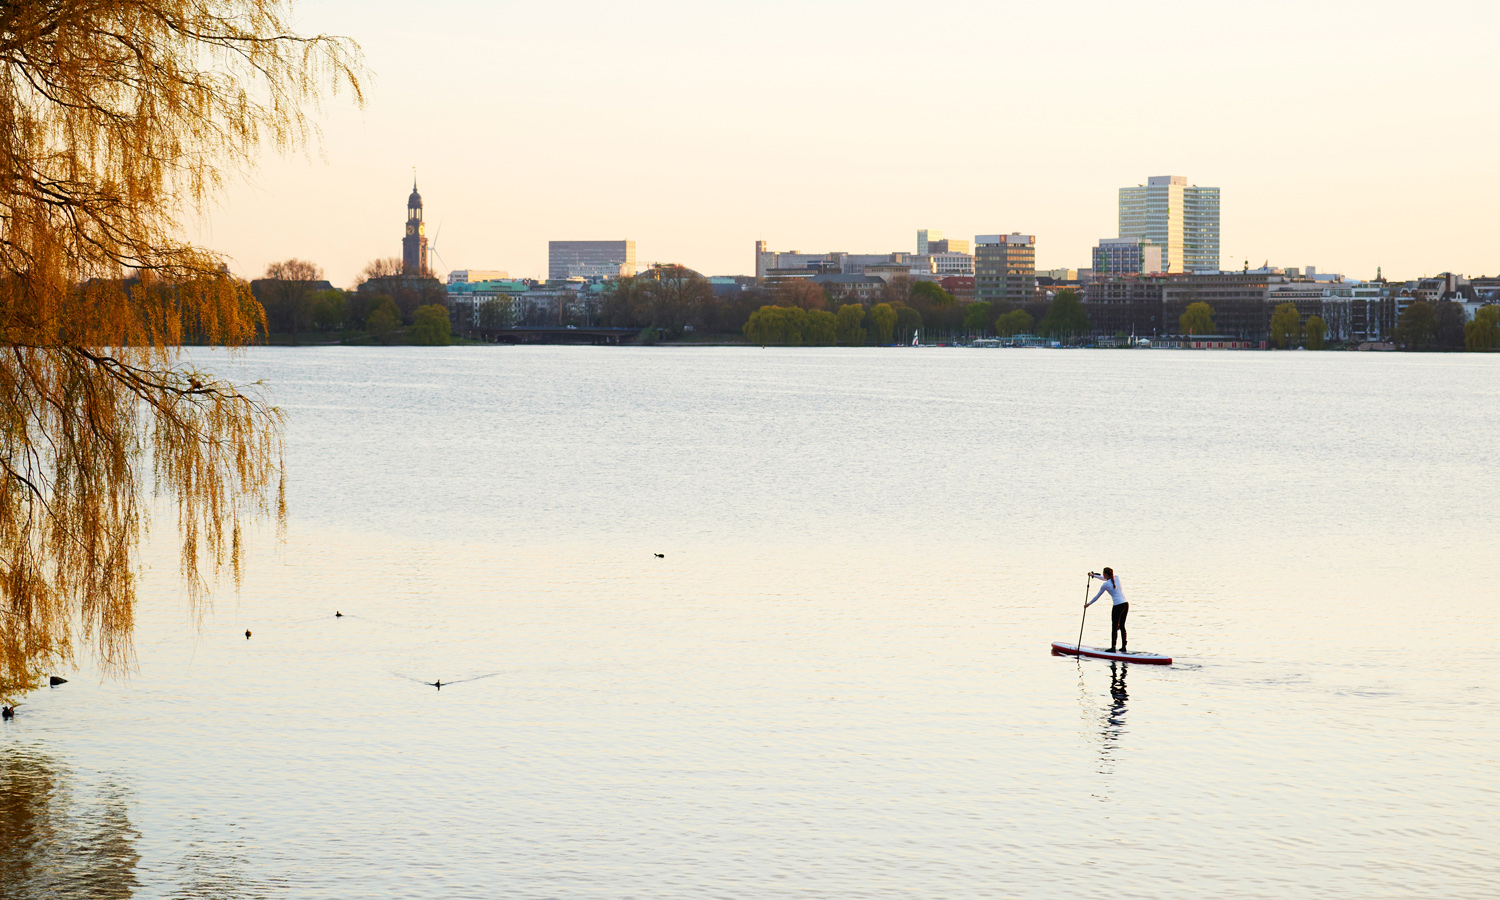 Hamburg - surfer soul meets urban lifestyle